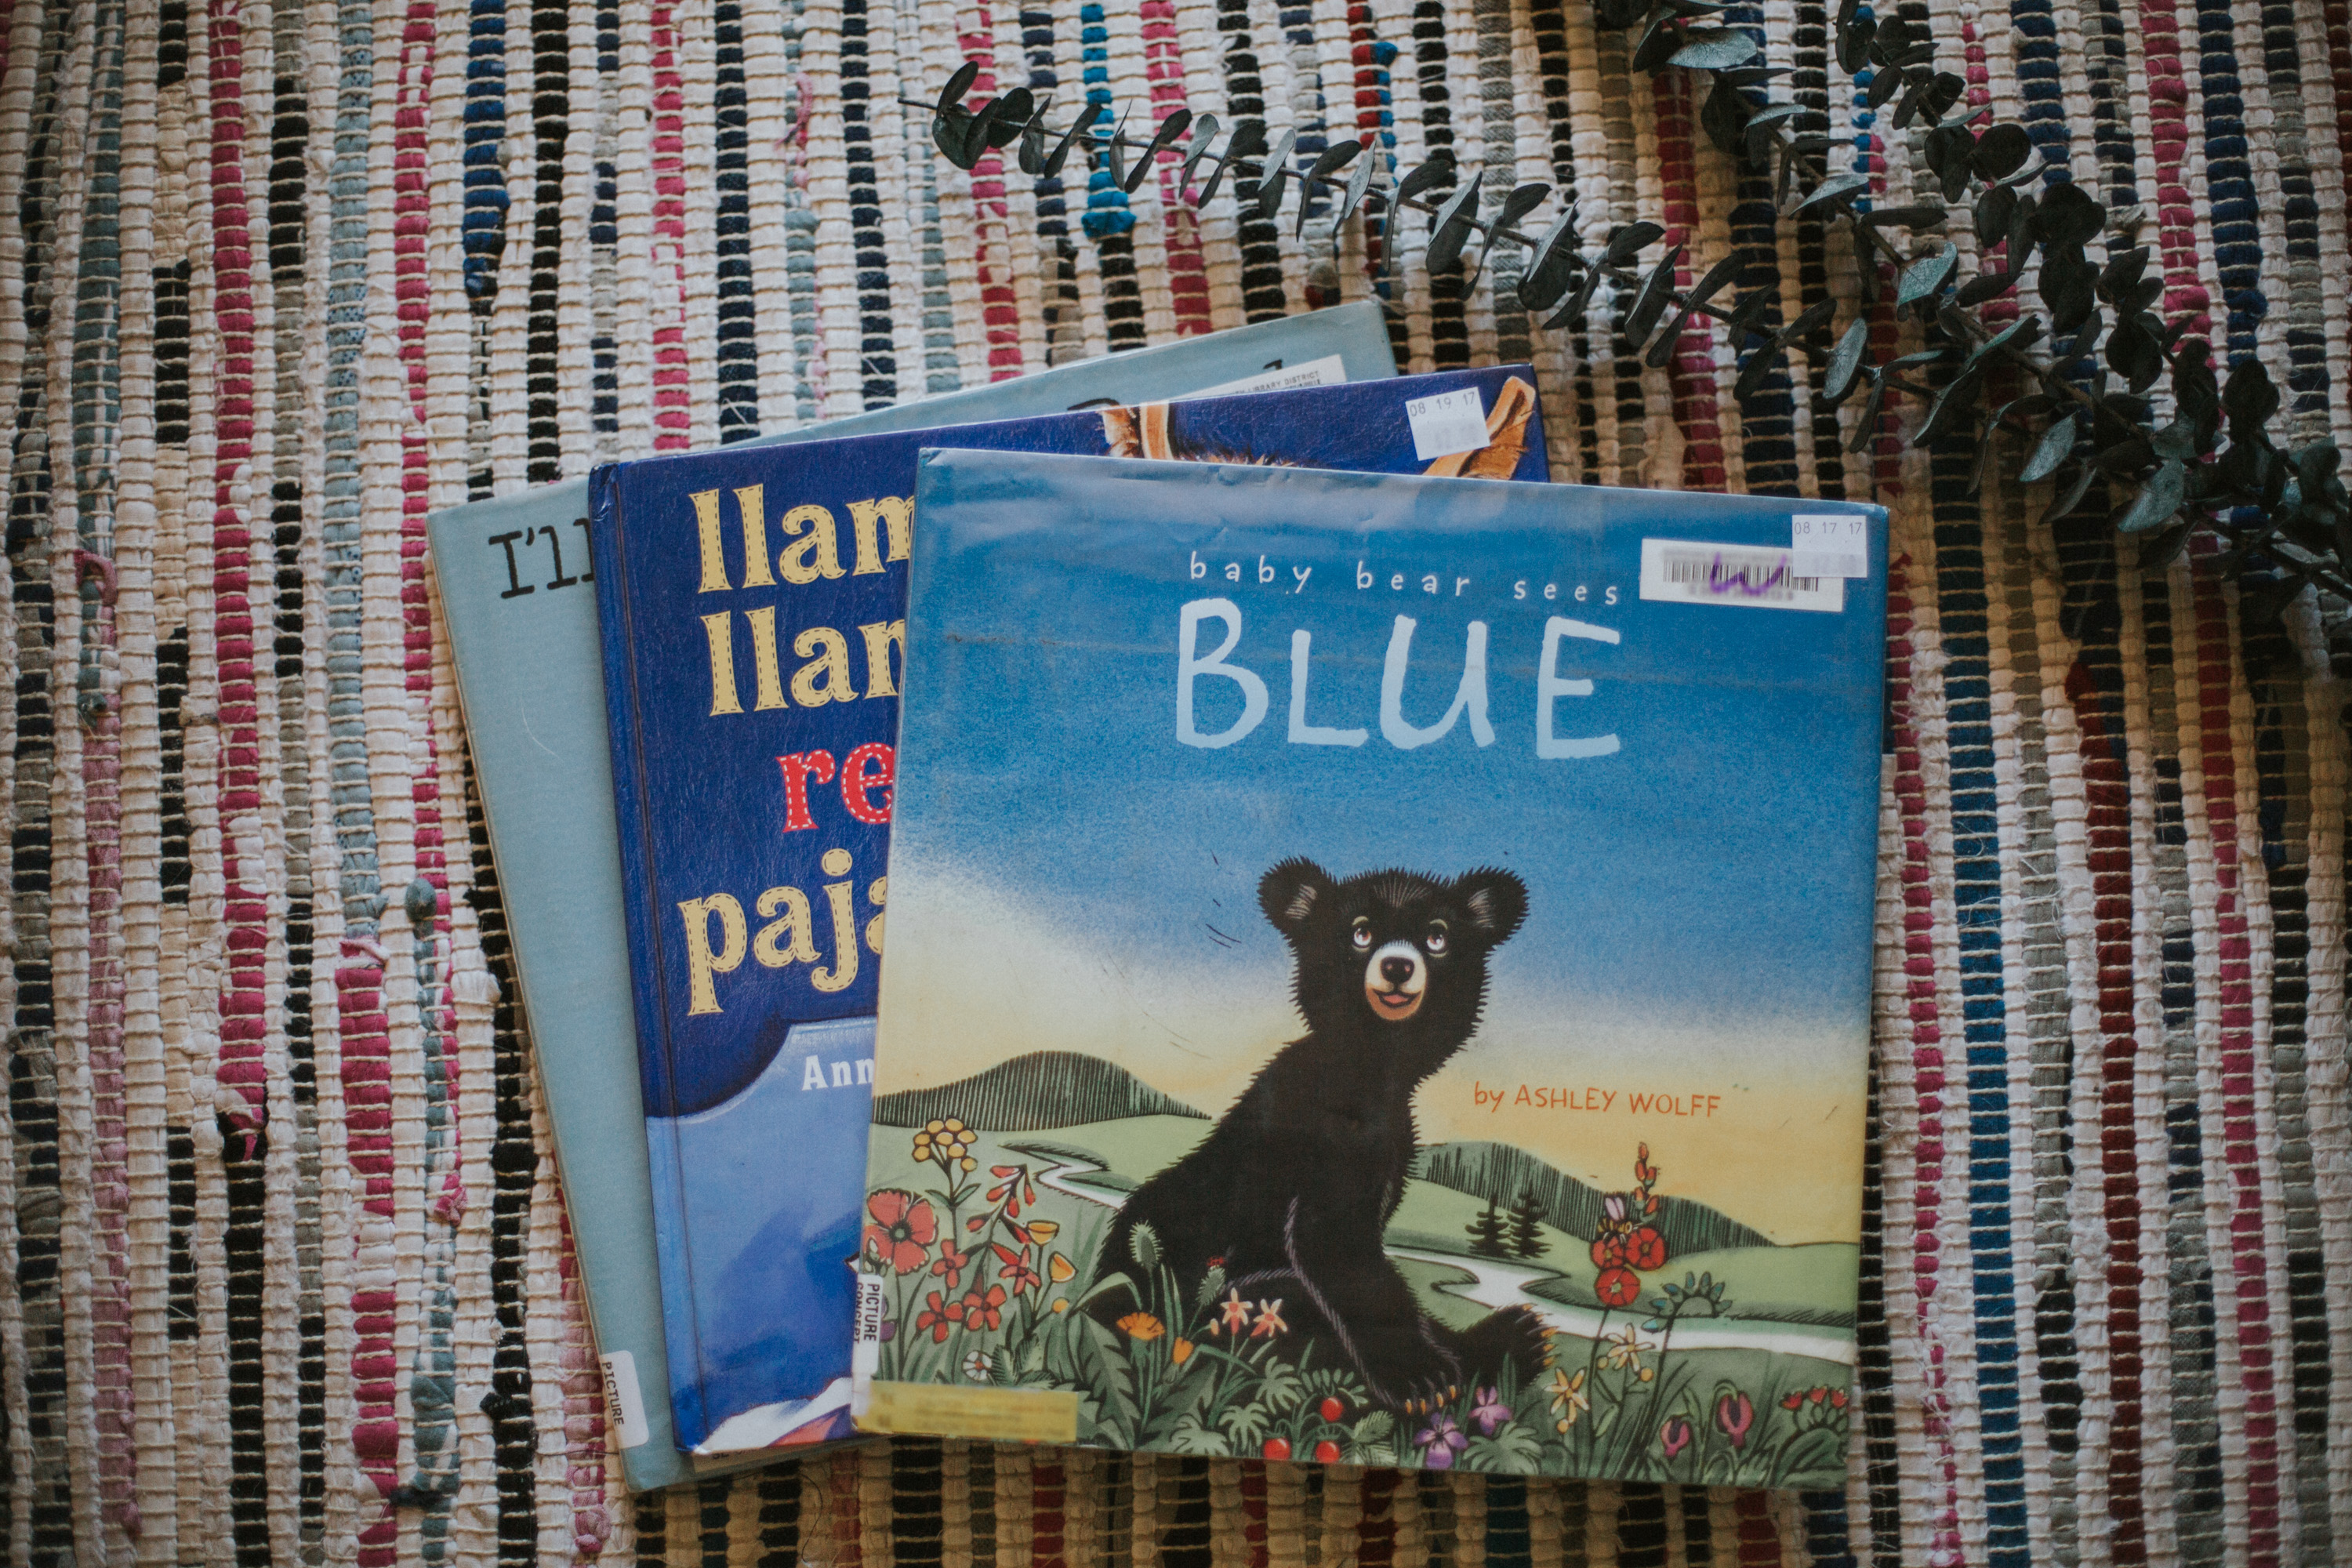 My Top Five Favorite Children's Books (From a Former Kindergarten Teacher)